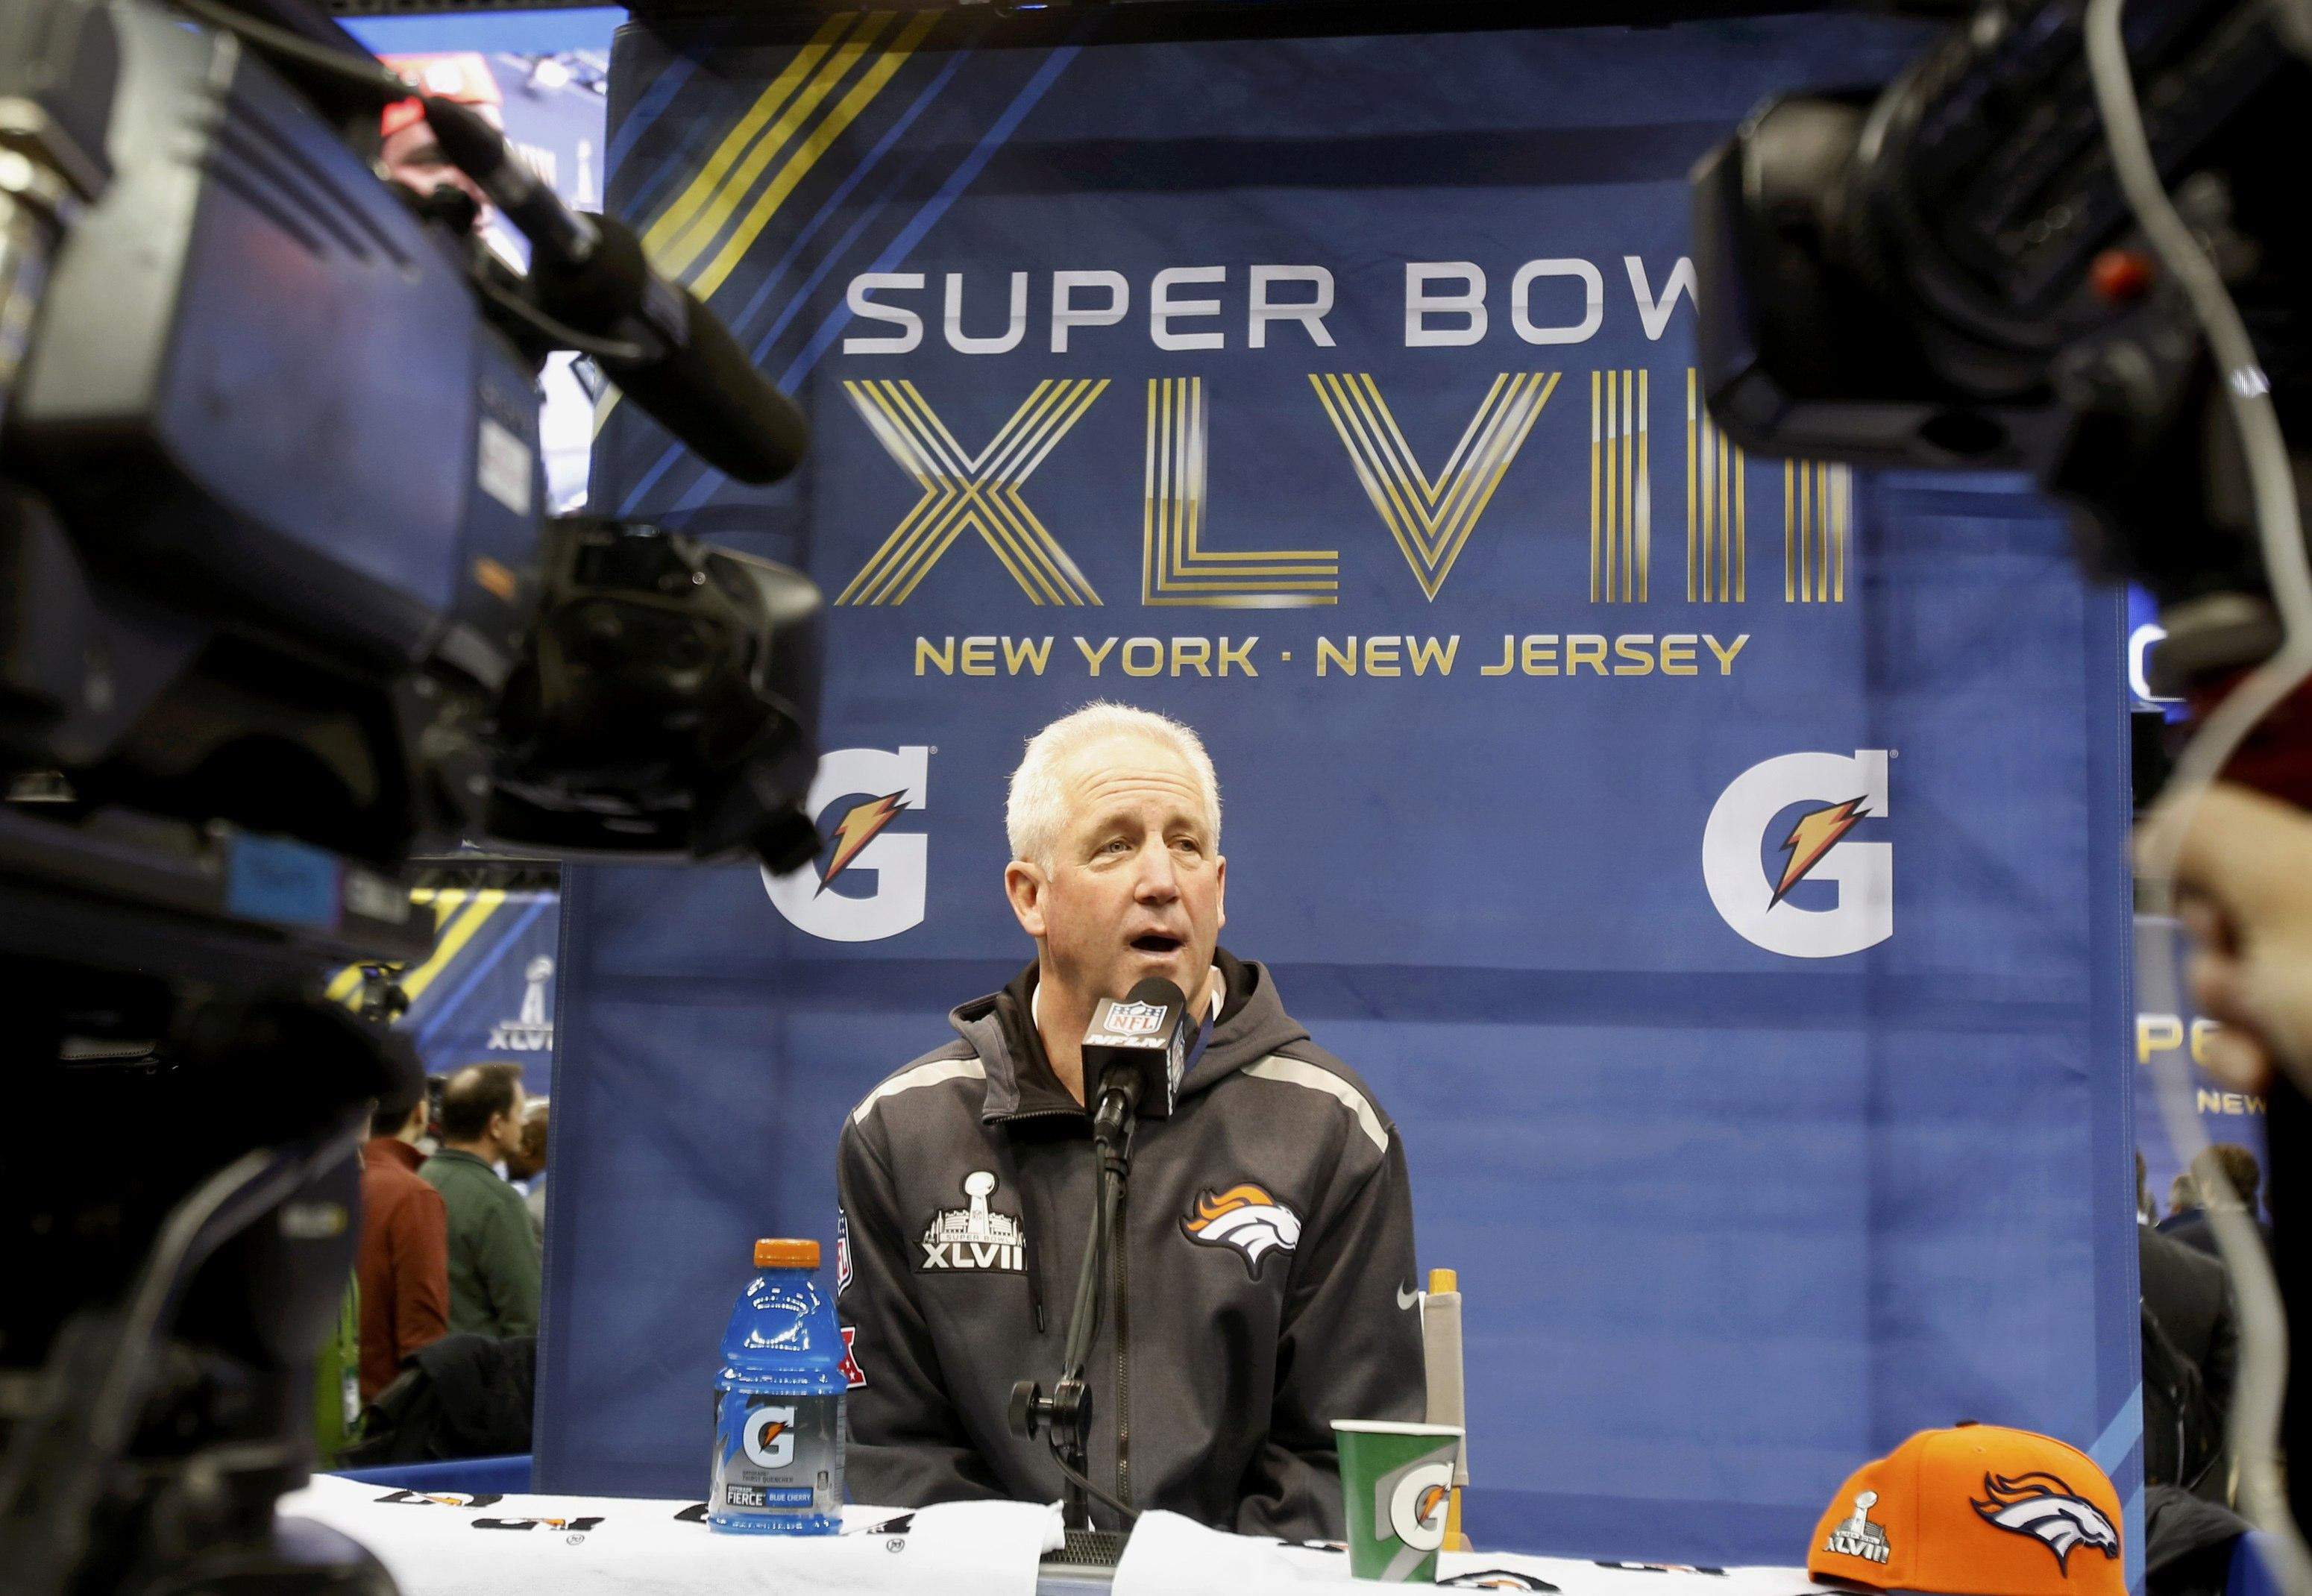 Super Bowl Media Day coach John fox